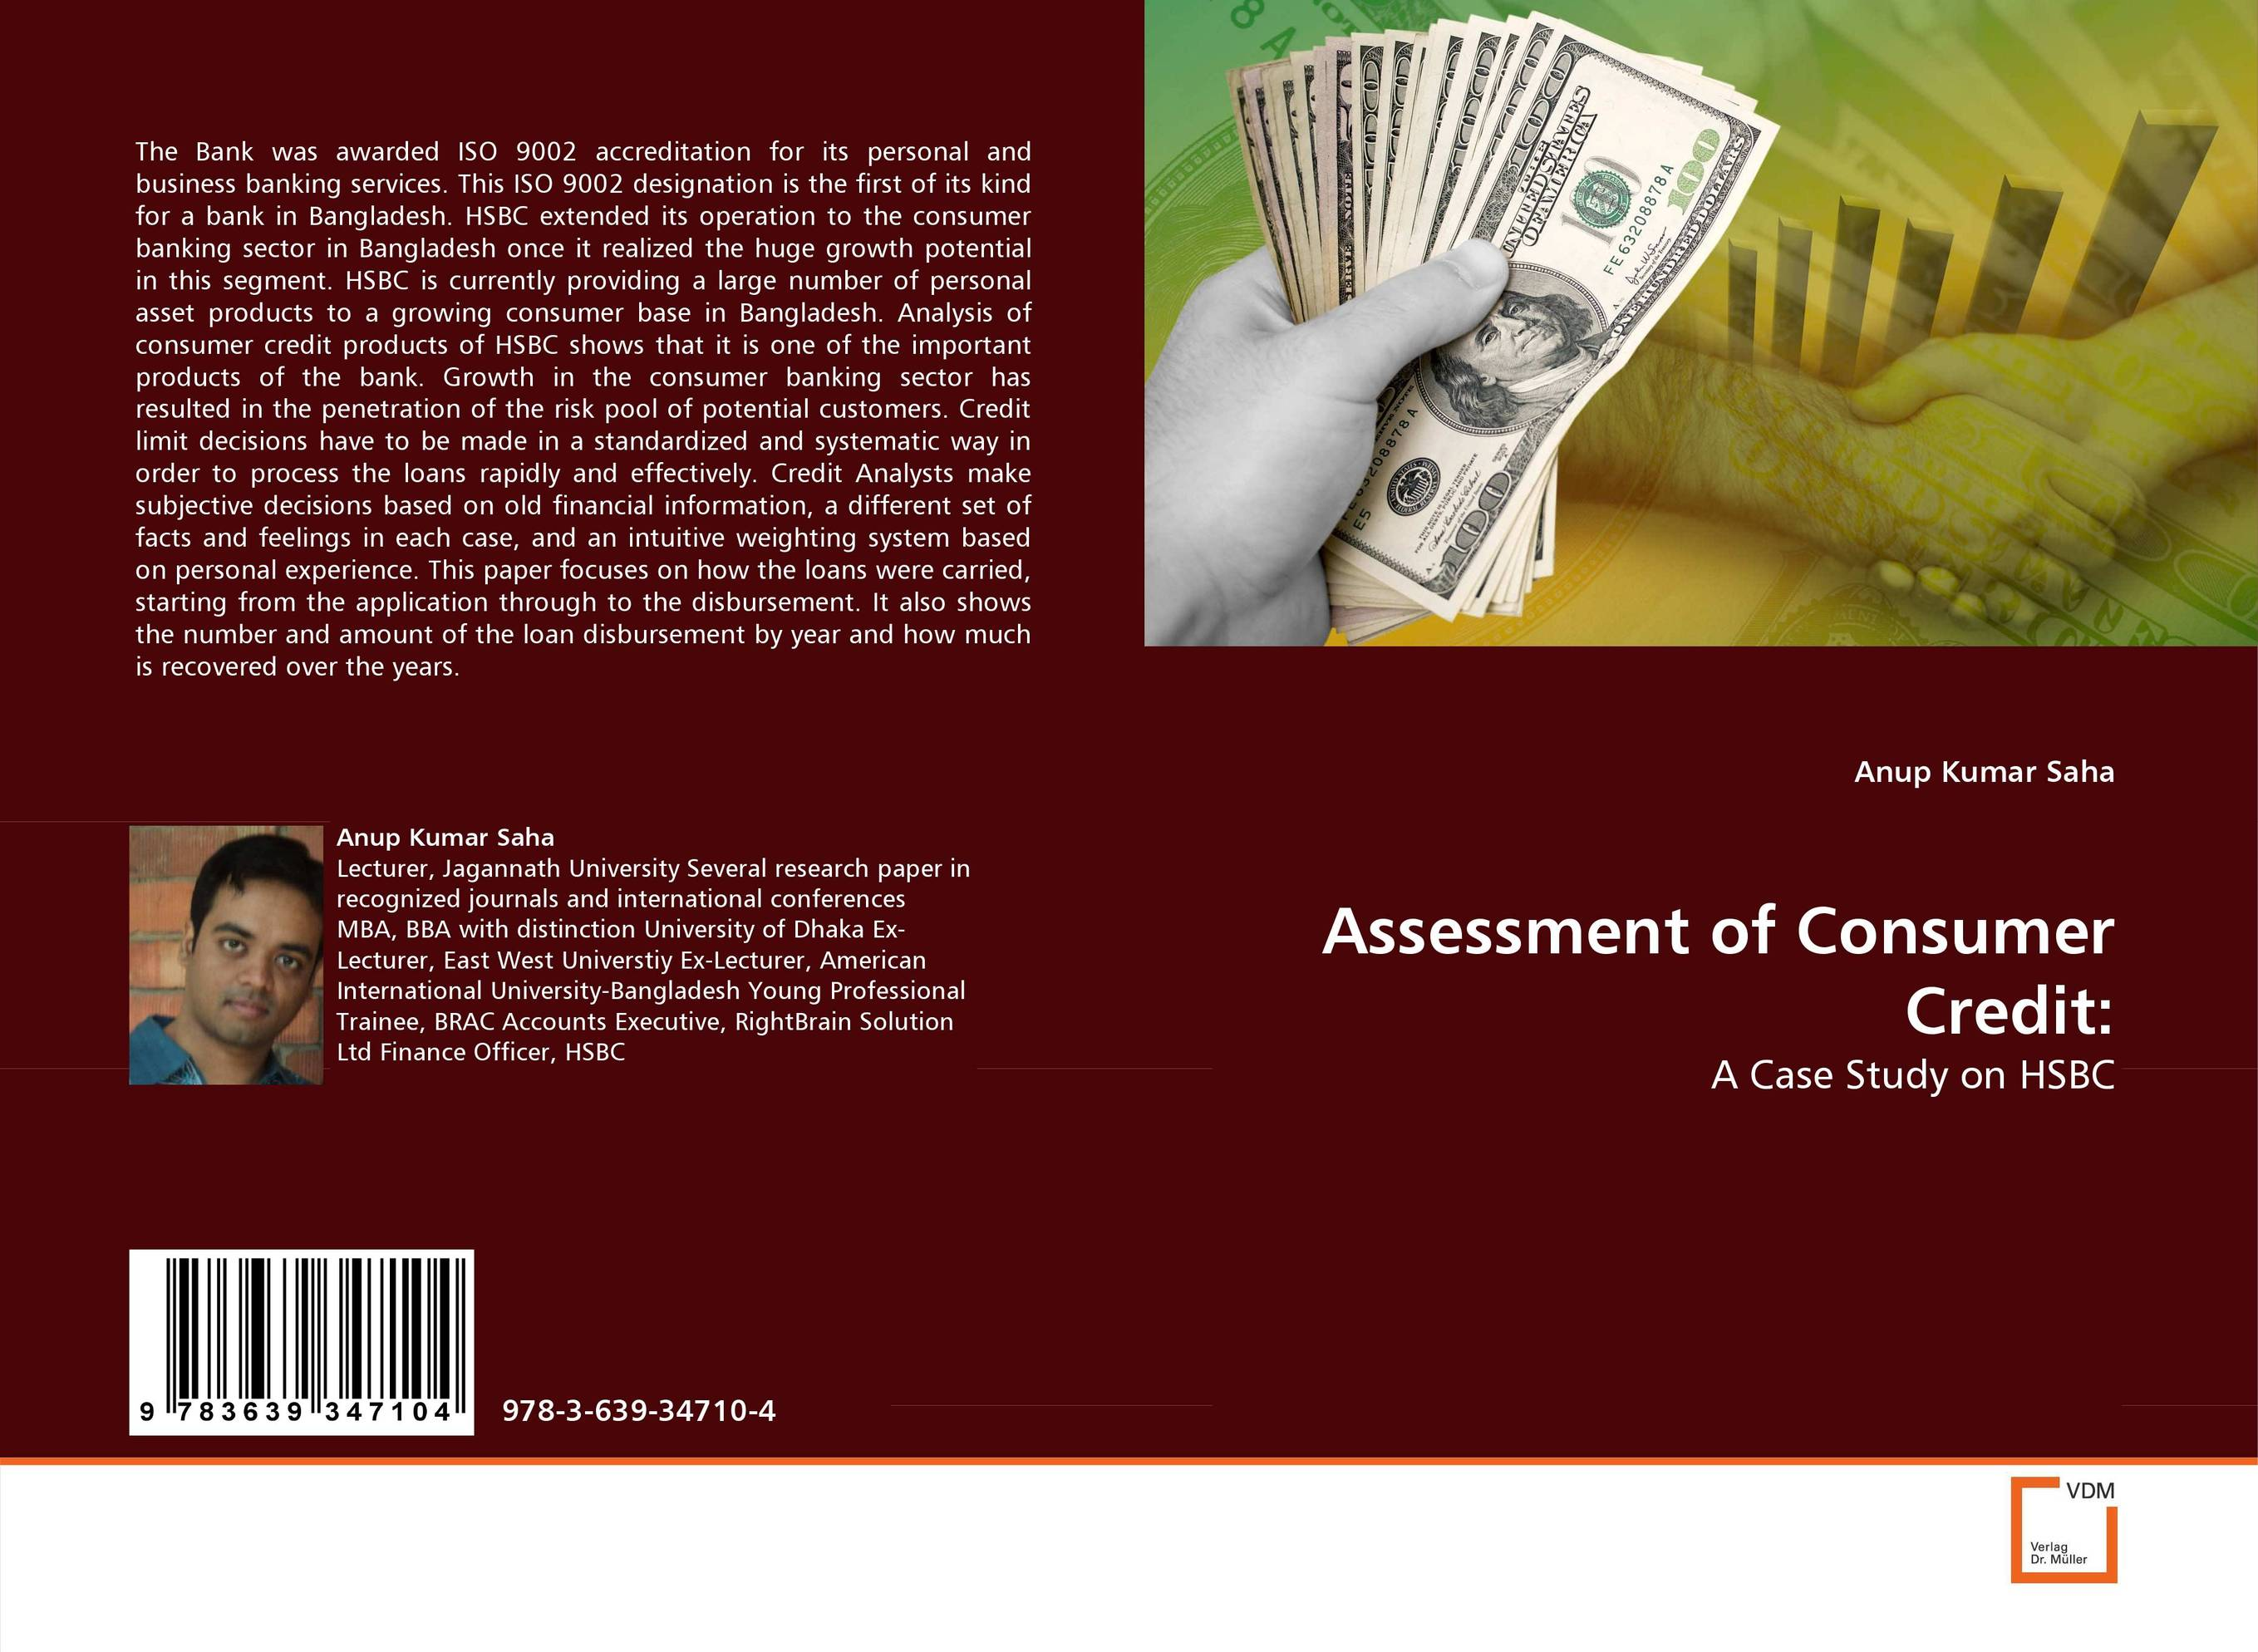 Assessment of Consumer Credit: